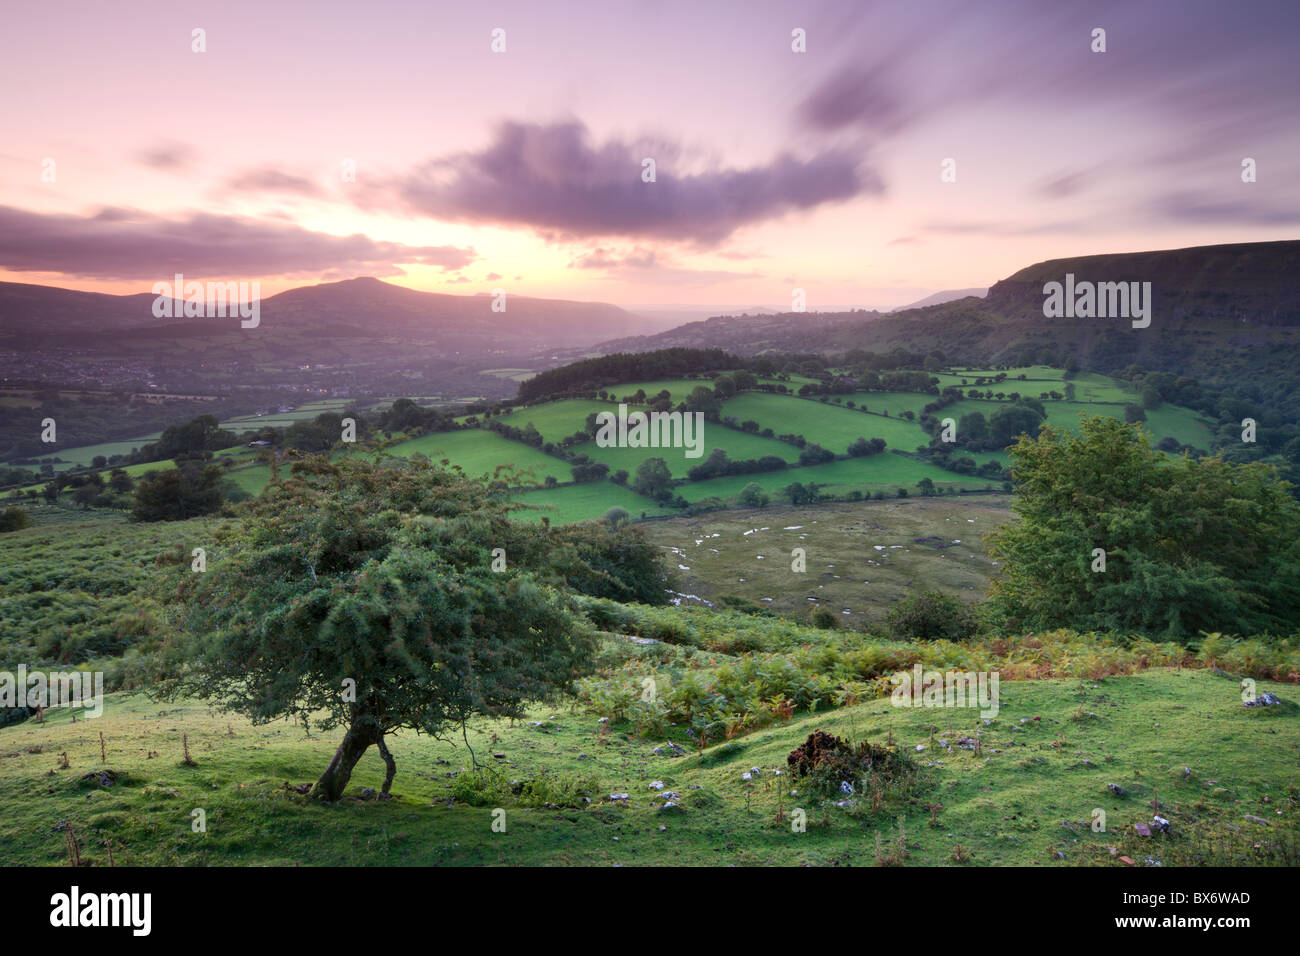 Sunrise over the Sugar Loaf viewed from Craig y Cilau near Llangattock Escarpment, Brecon Beacons National Park, - Stock Image